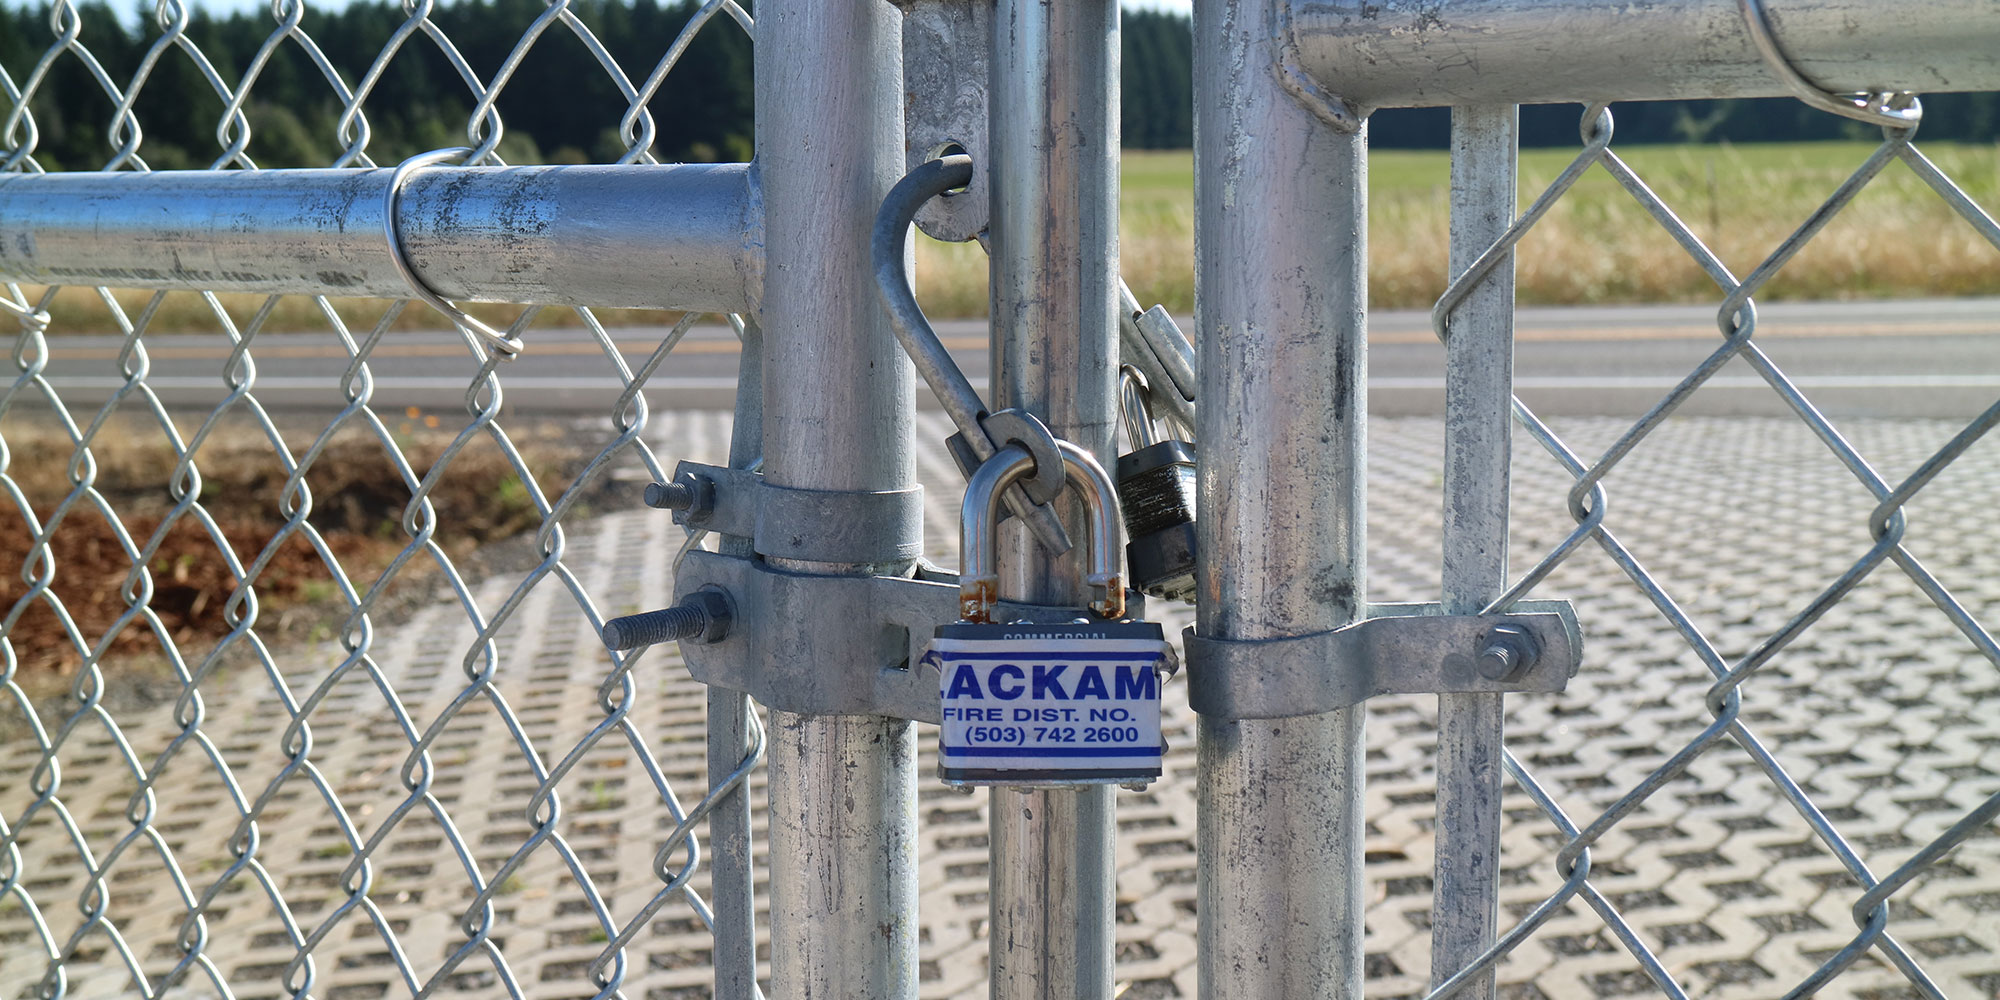 Locked gate